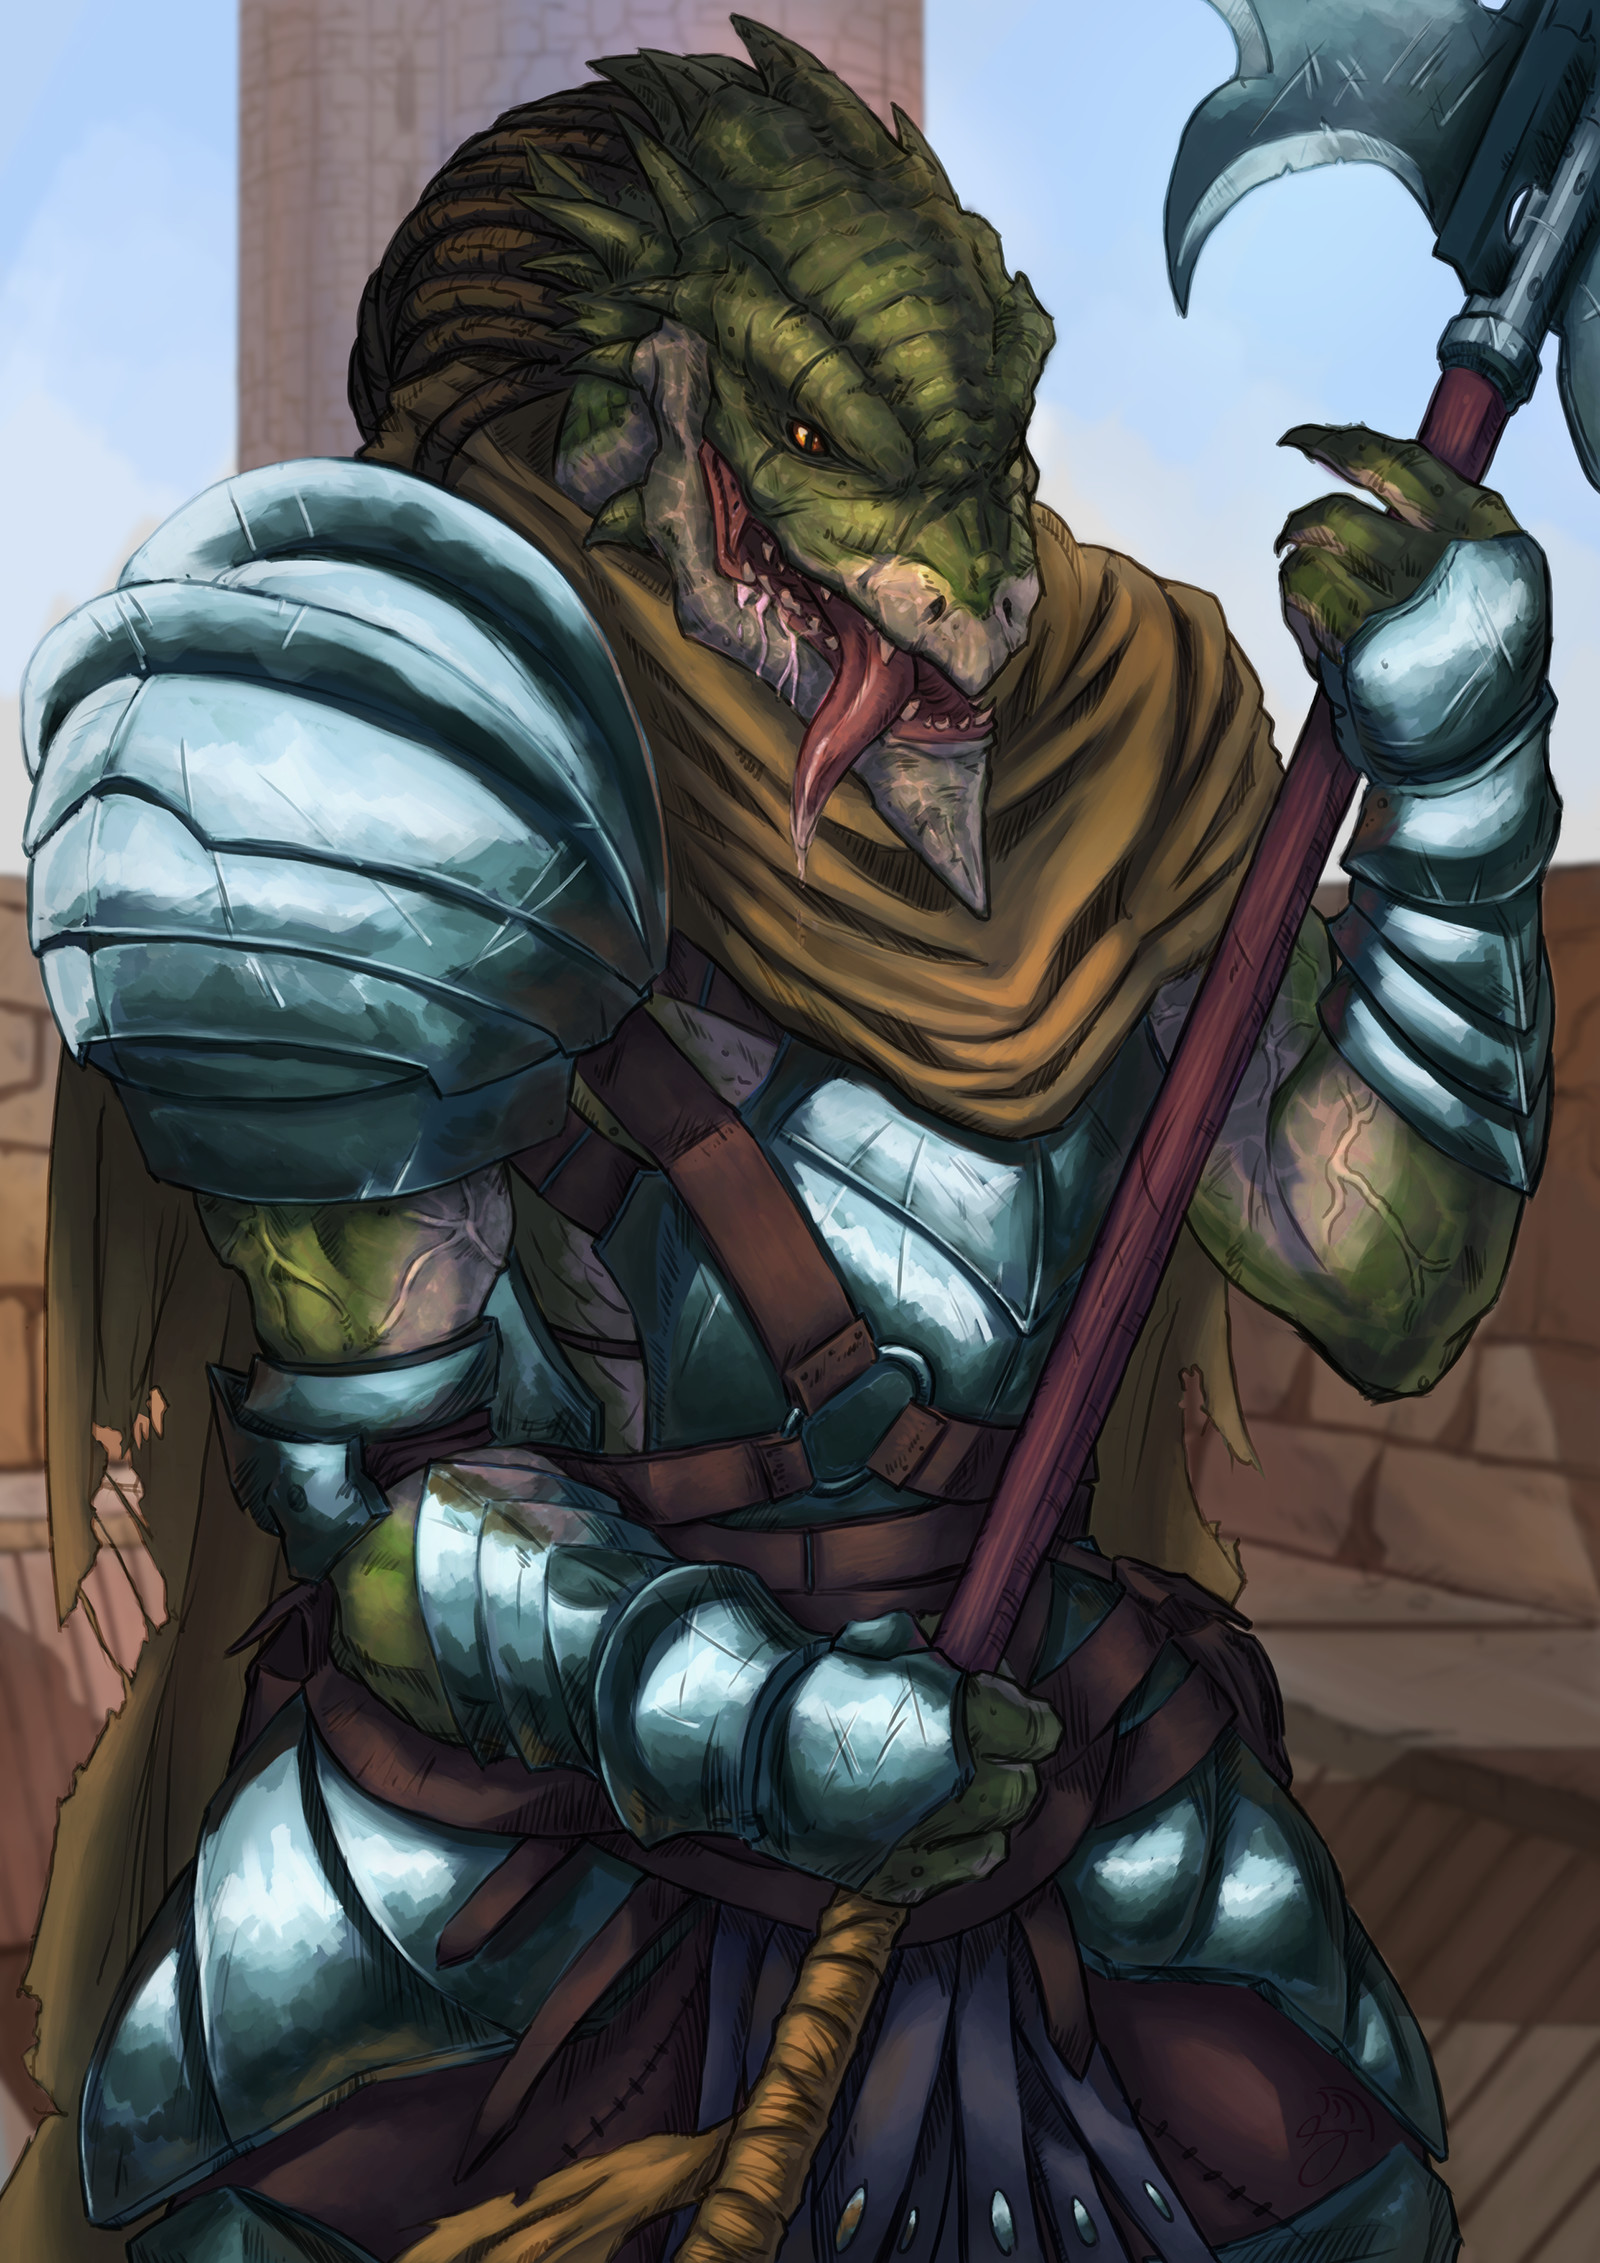 ArtStation - Dragonborn Fighter, Ted Thilander